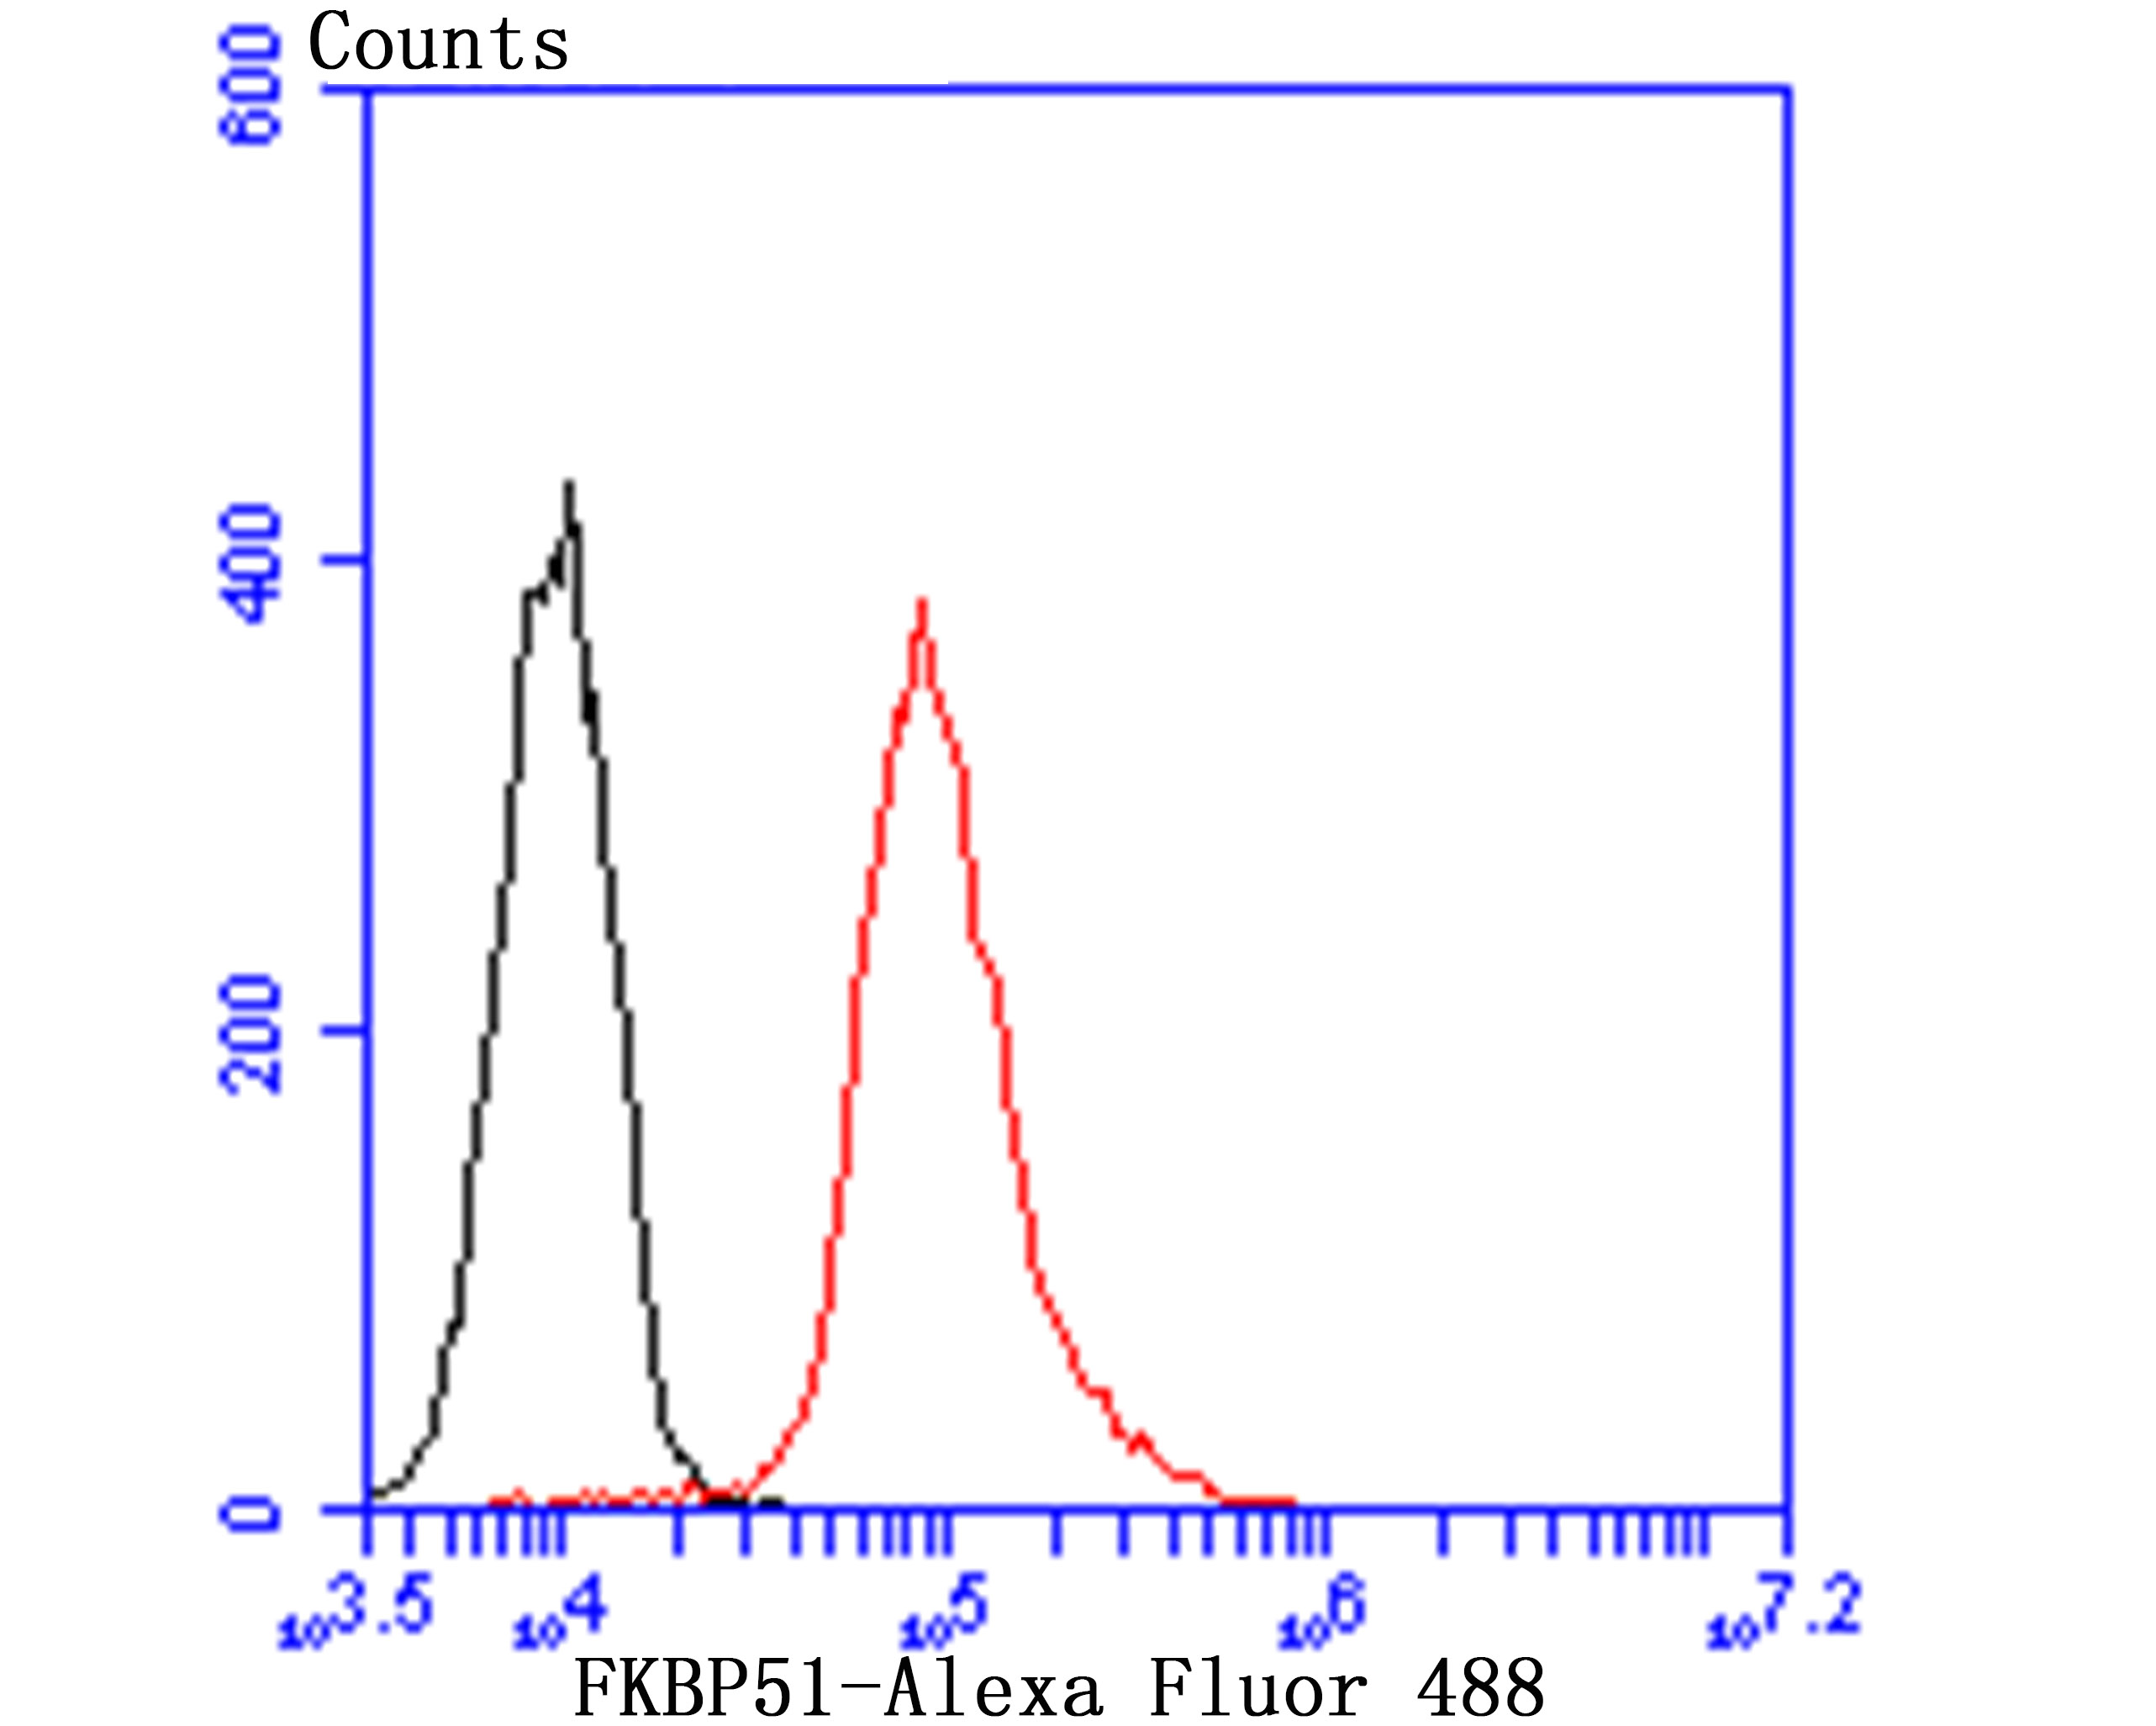 Flow cytometric analysis of FKBP51 was done on Daudi cells. The cells were fixed, permeabilized and stained with the primary antibody (ET7107-64, 1/50) (red). After incubation of the primary antibody at room temperature for an hour, the cells were stained with a Alexa Fluor 488-conjugated Goat anti-Rabbit IgG Secondary antibody at 1/1000 dilution for 30 minutes.Unlabelled sample was used as a control (cells without incubation with primary antibody; black).